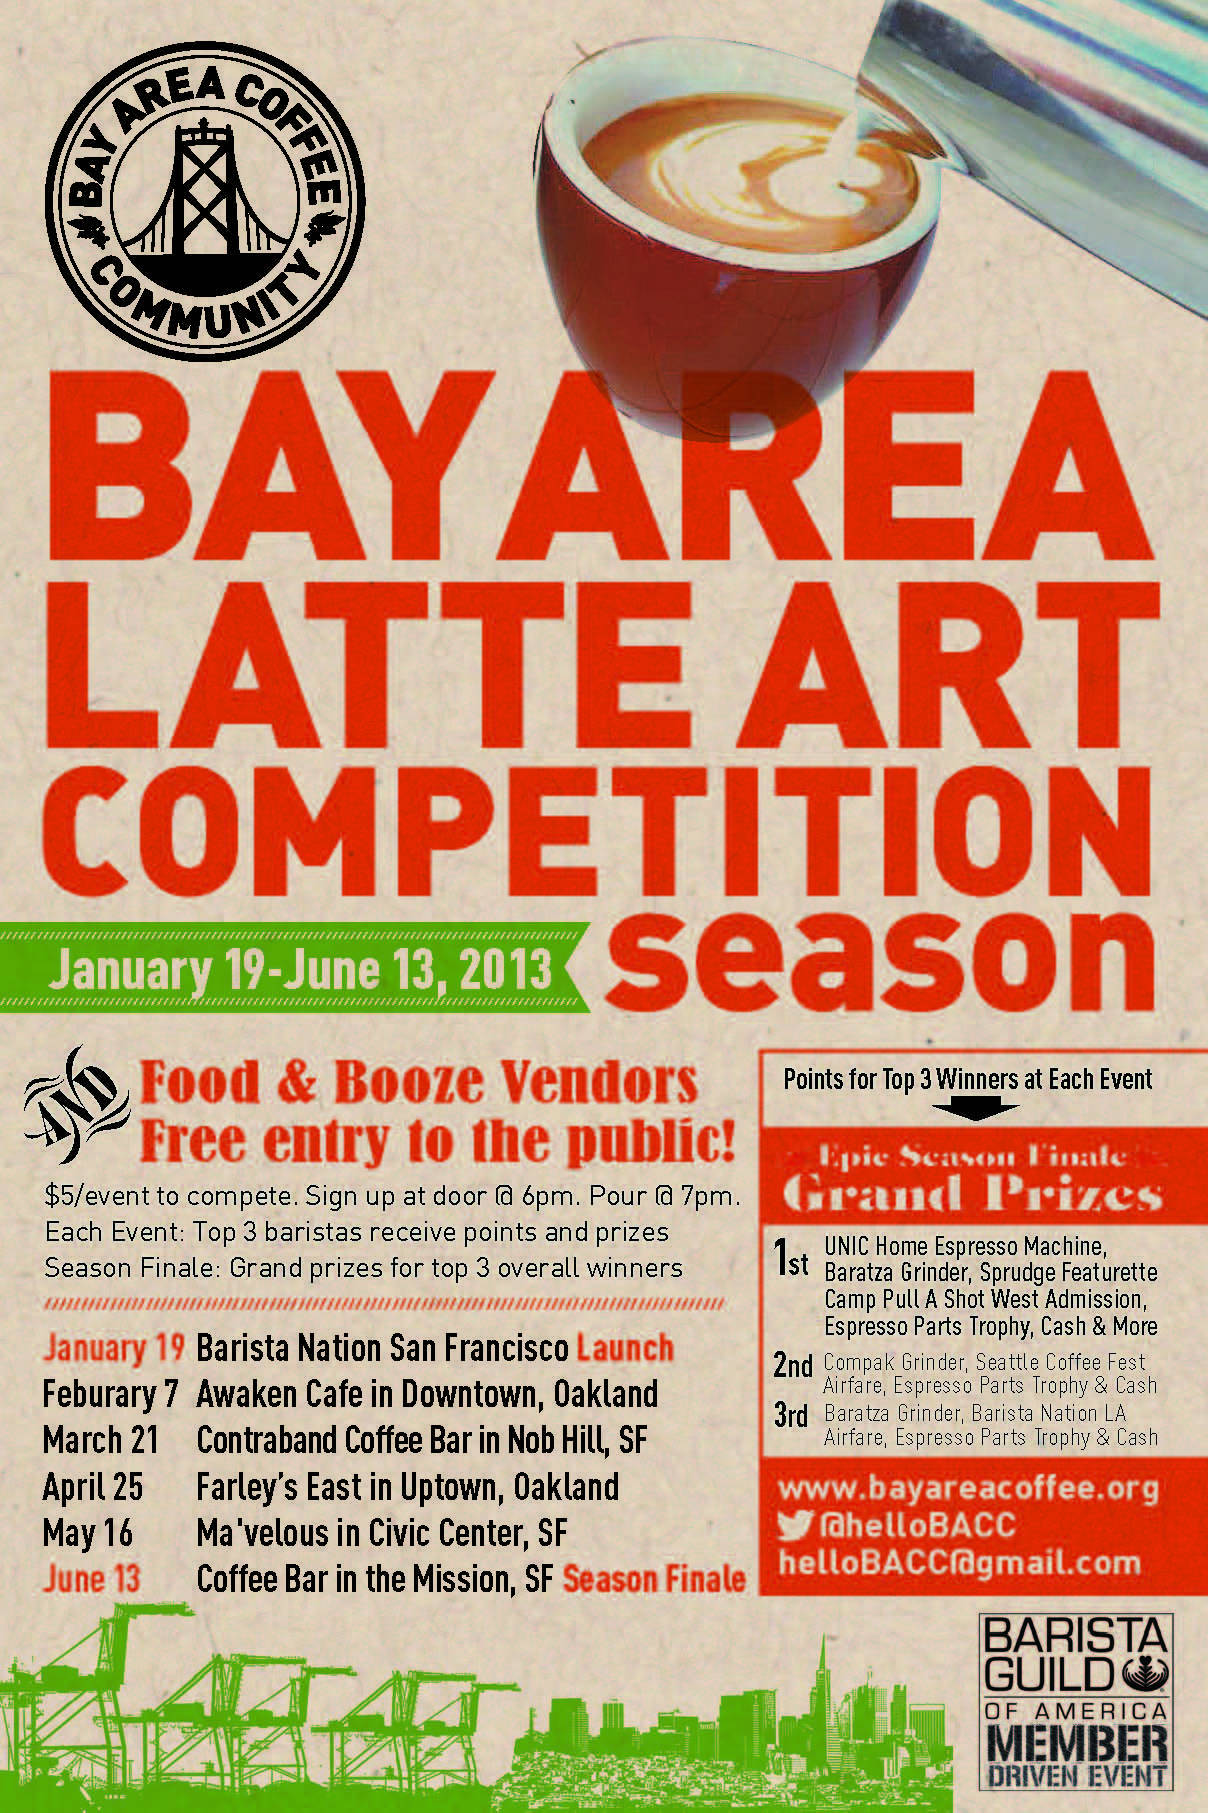 Calling all coffee lovers! Bay Area latte art competition!